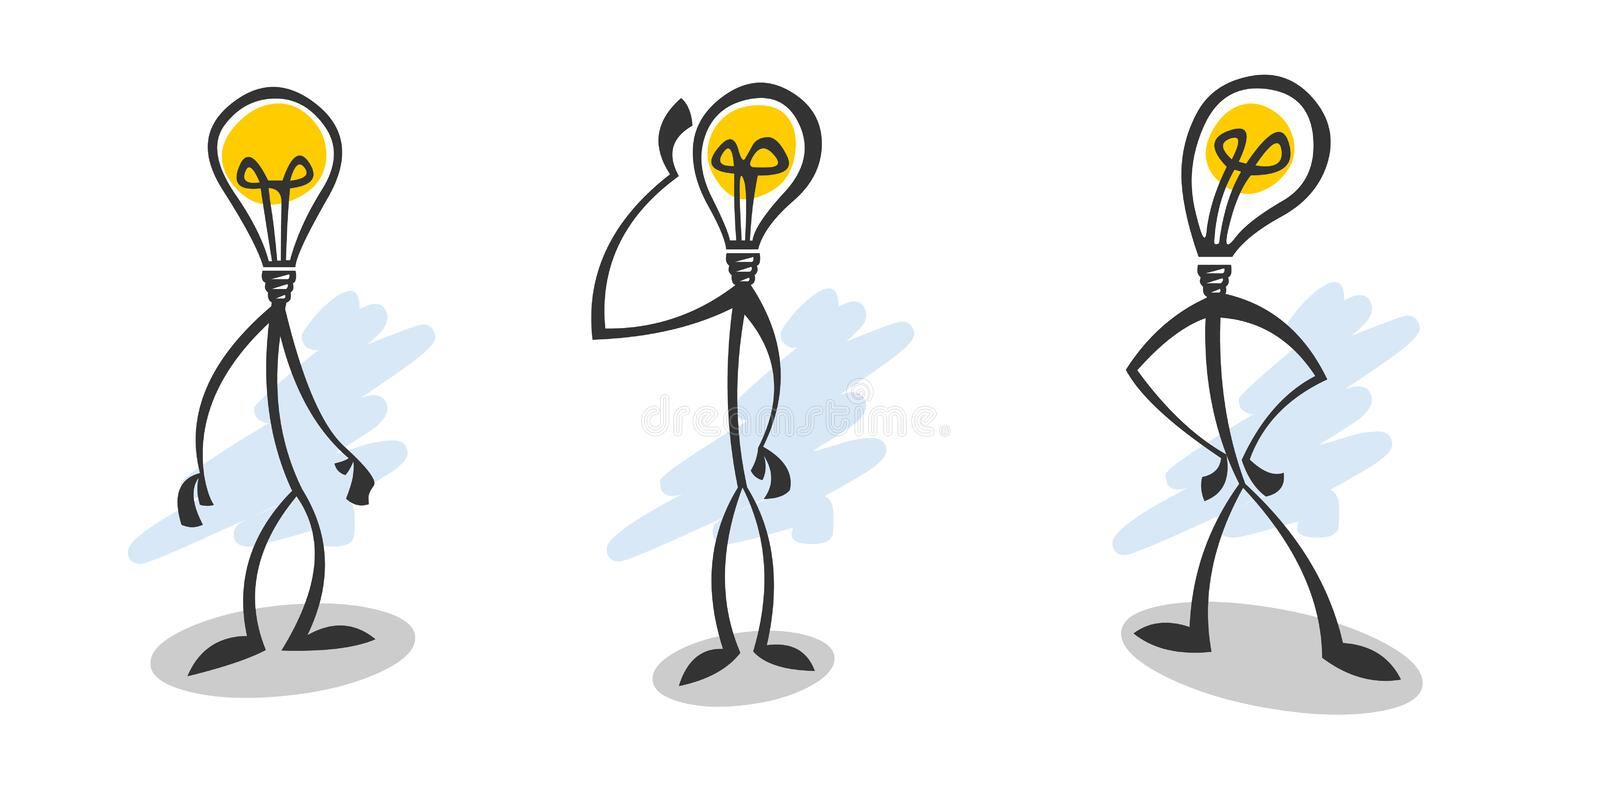 Stick lamp guy stock photos